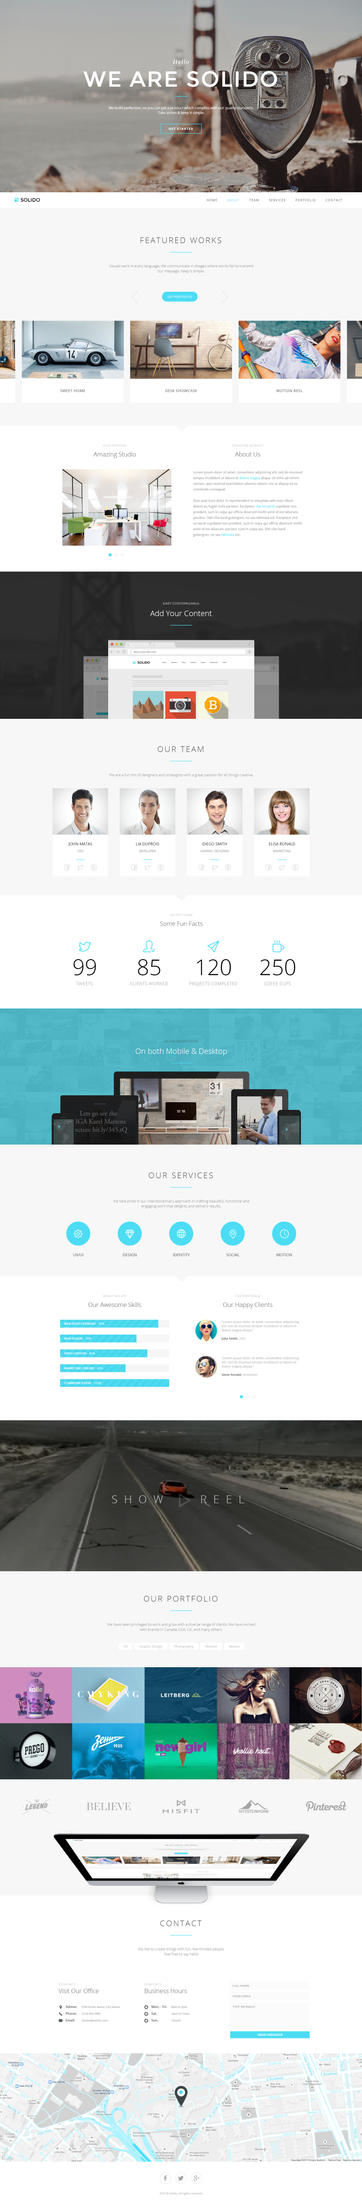 Solido - Responsive One Page Parallax Template by DarkStaLkeRR